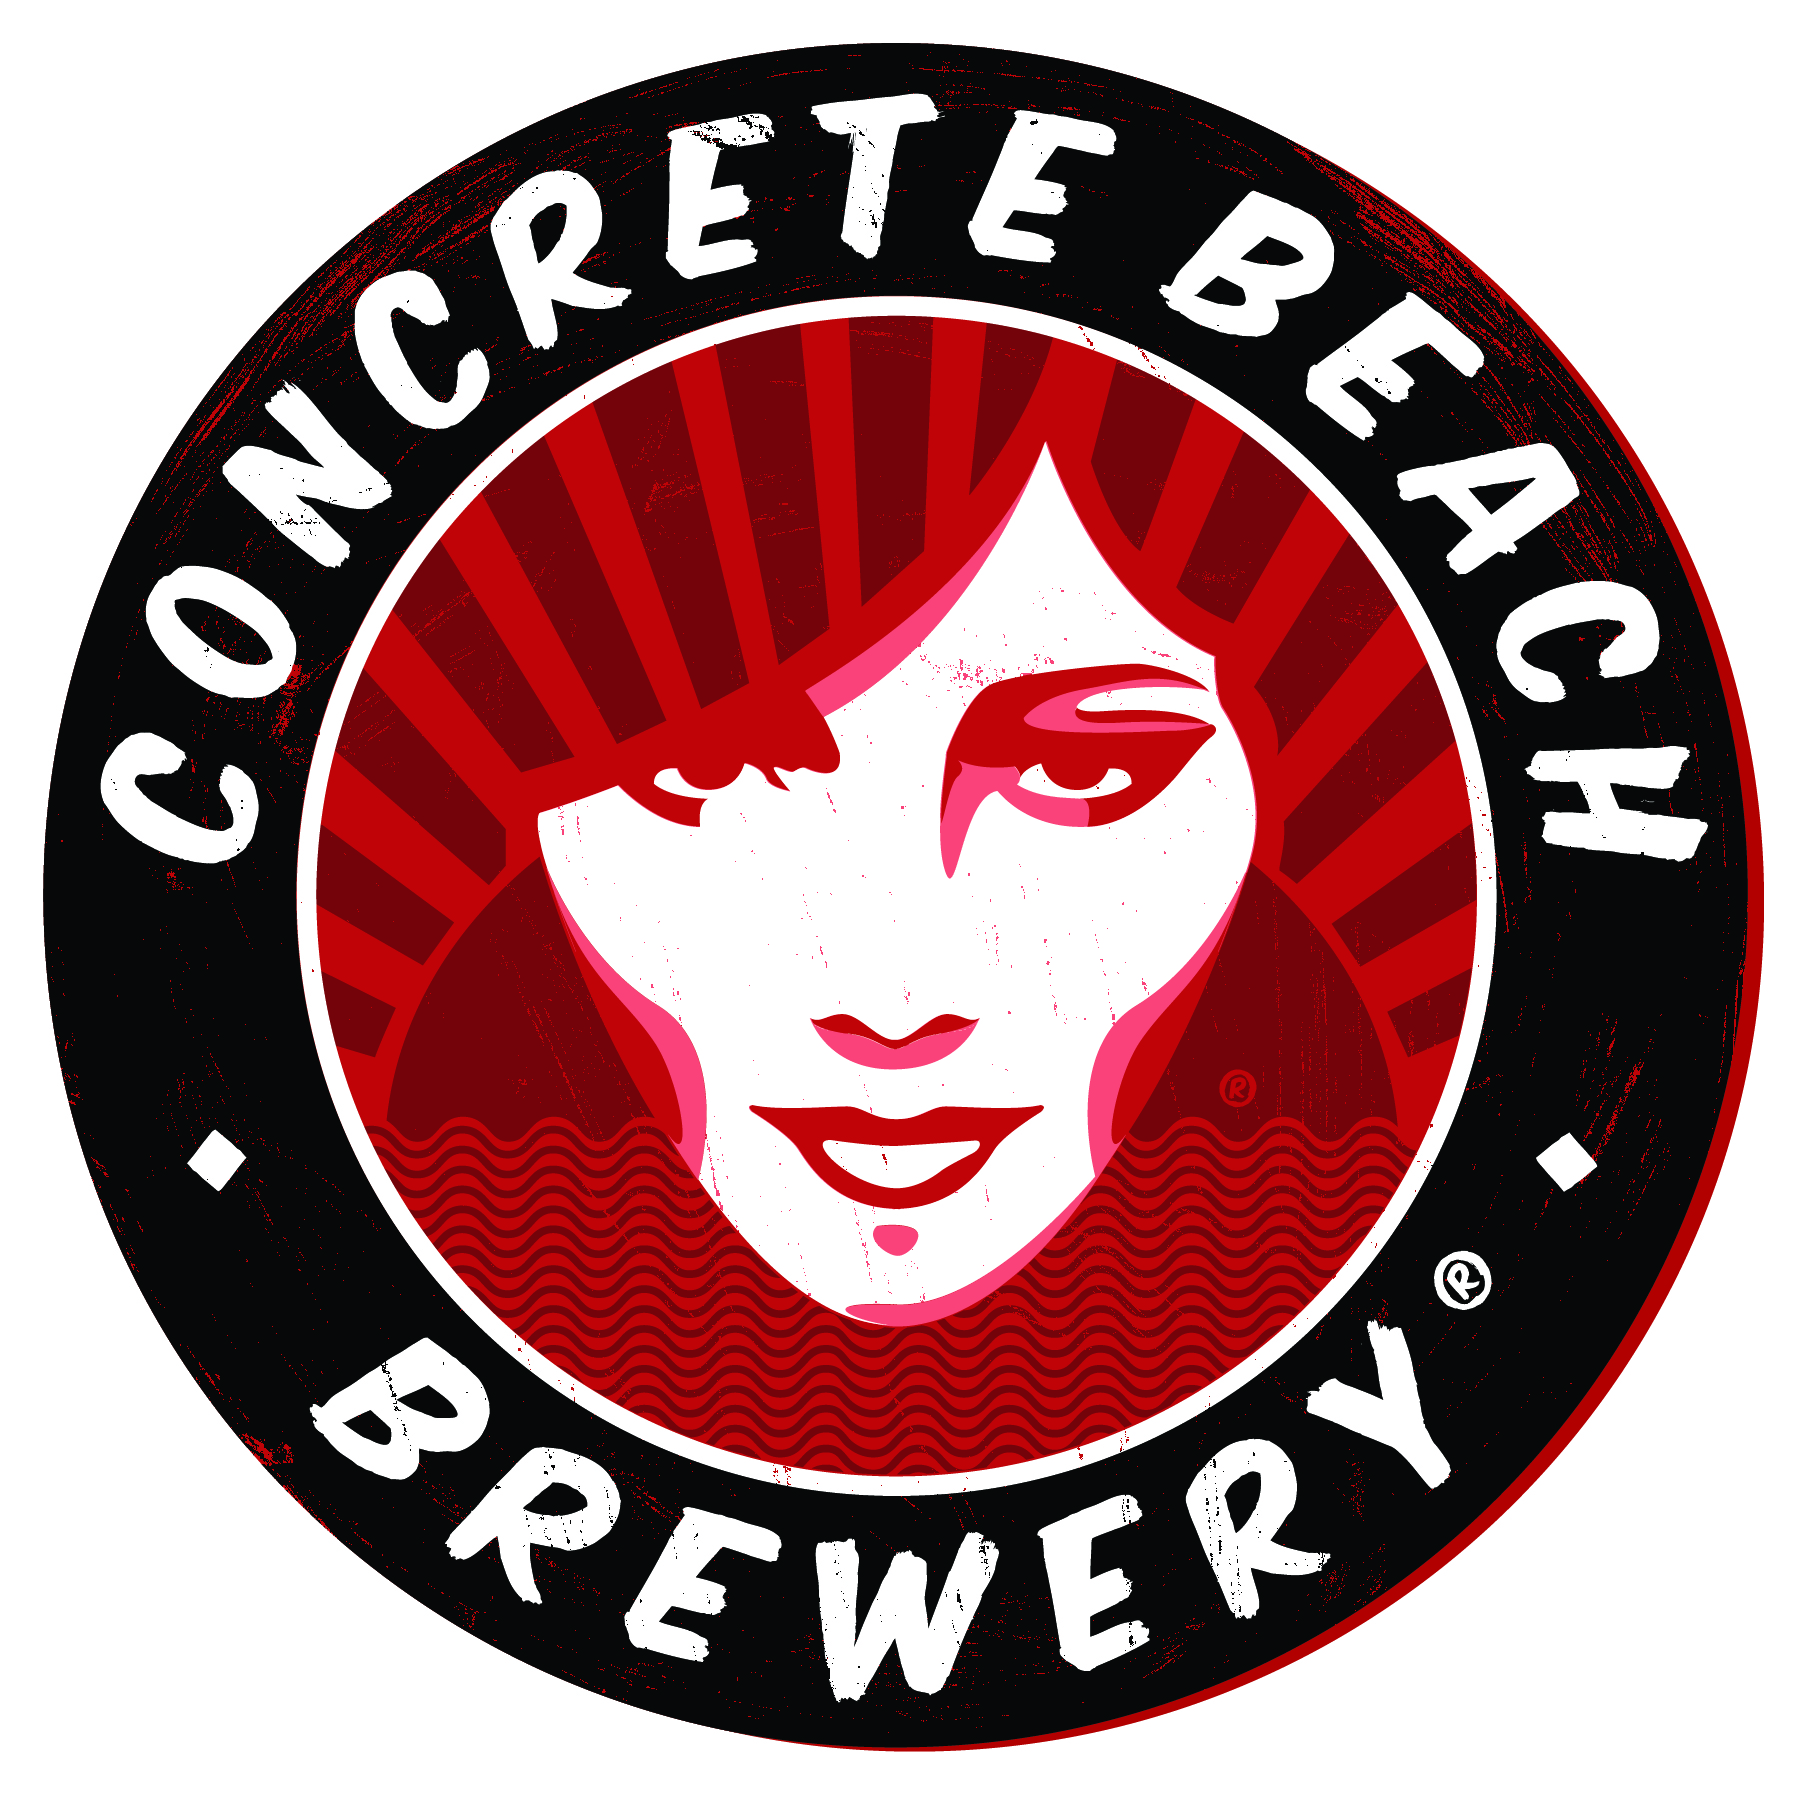 Carnival Cruise Line Partners With Concrete Beach Brewery to Create A Craft Brewery on the New Carnival Vista